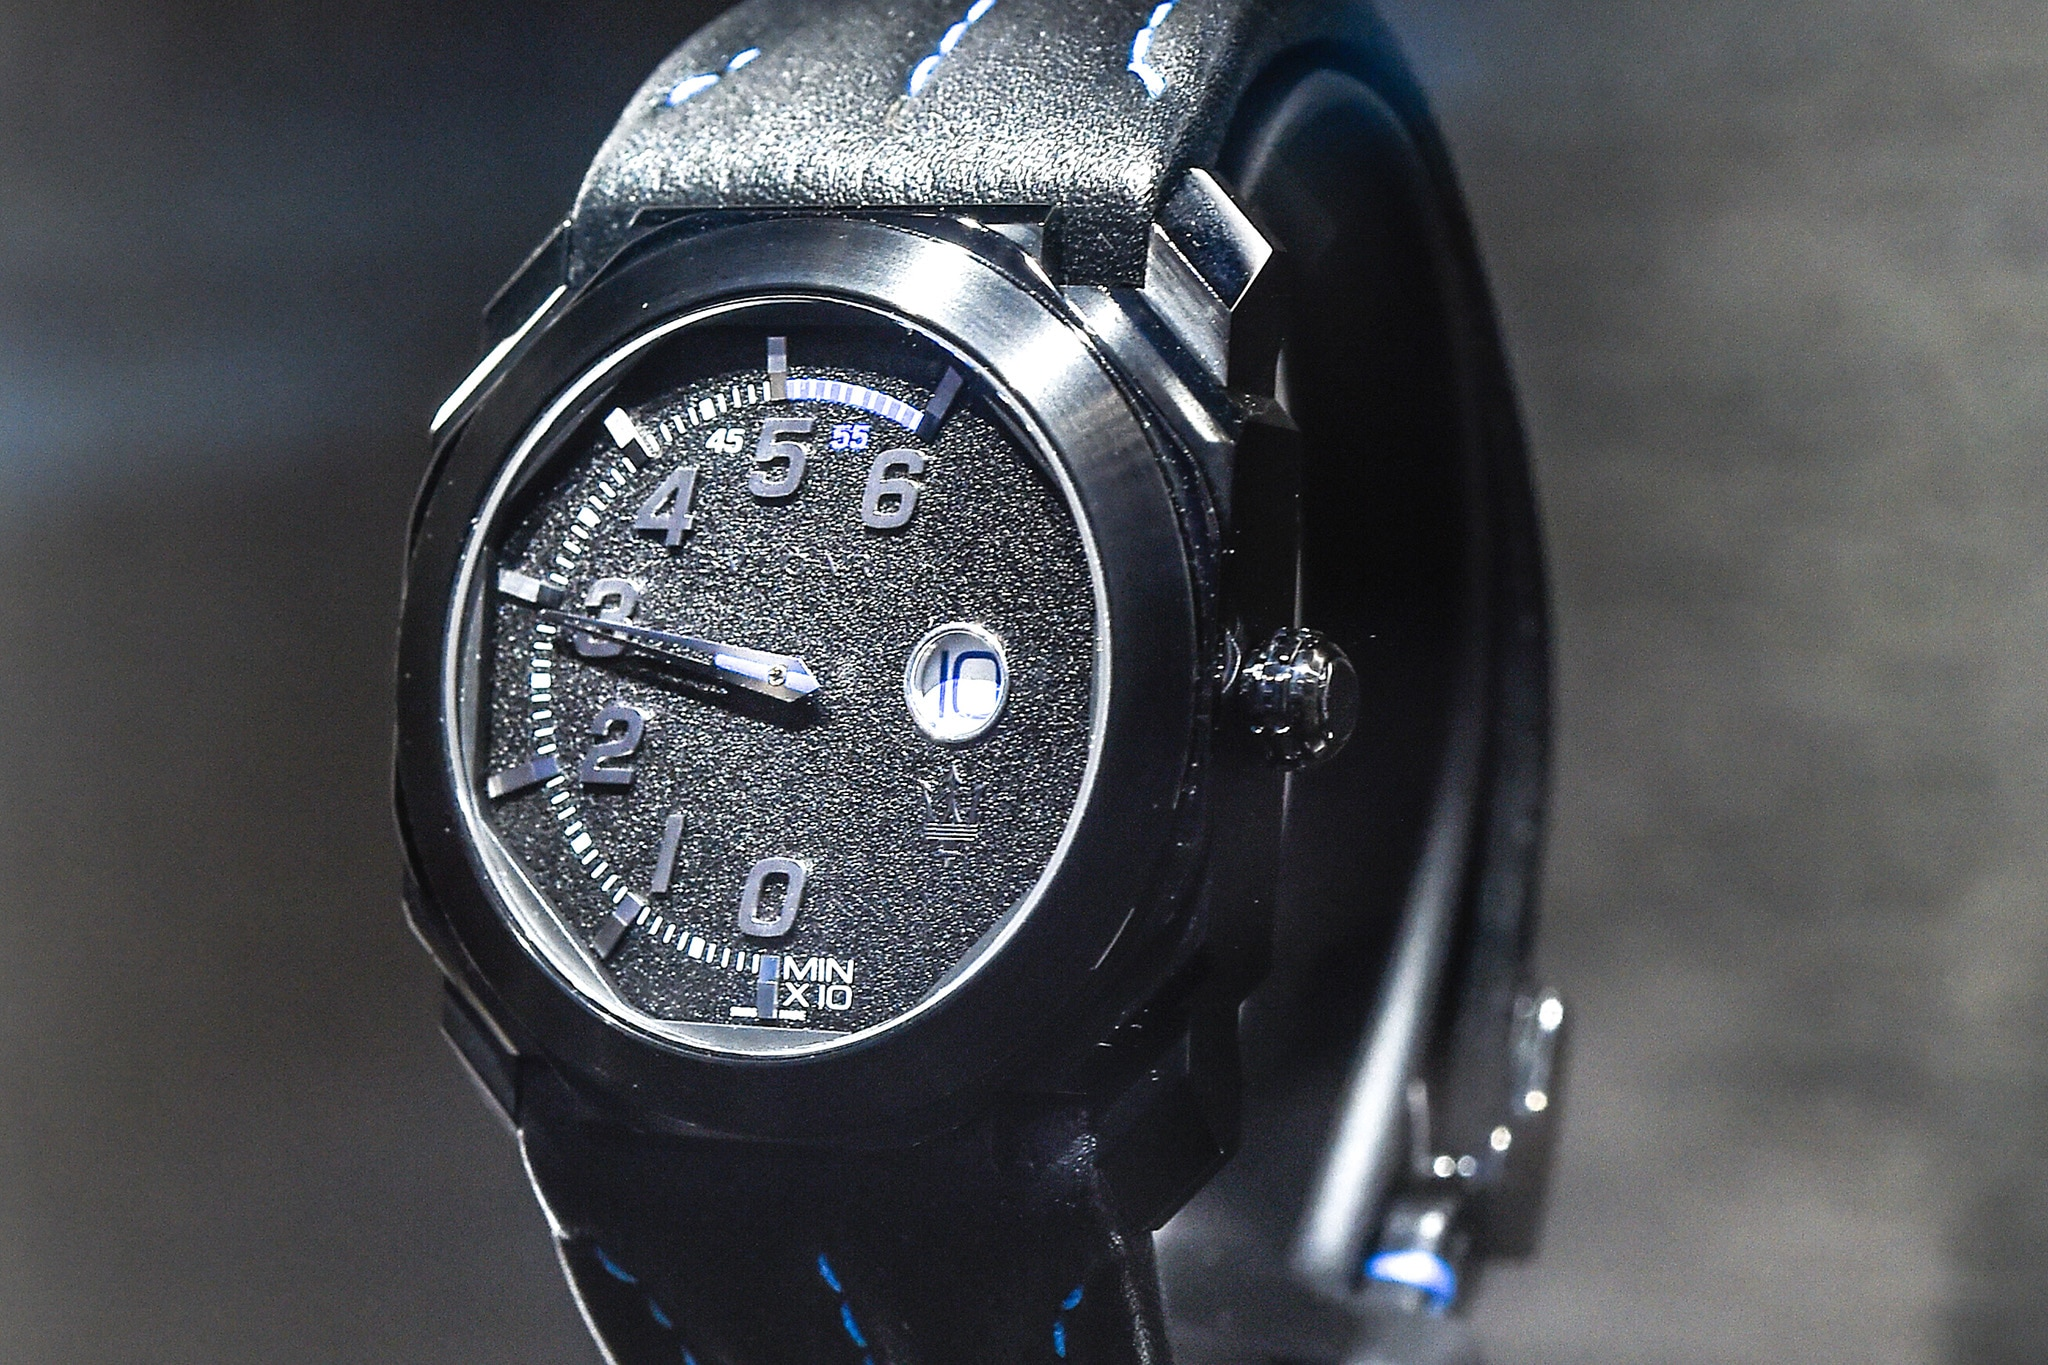 56db6846878 Maserati and Bulgari Collaborate for New Octo Retro Watch ...